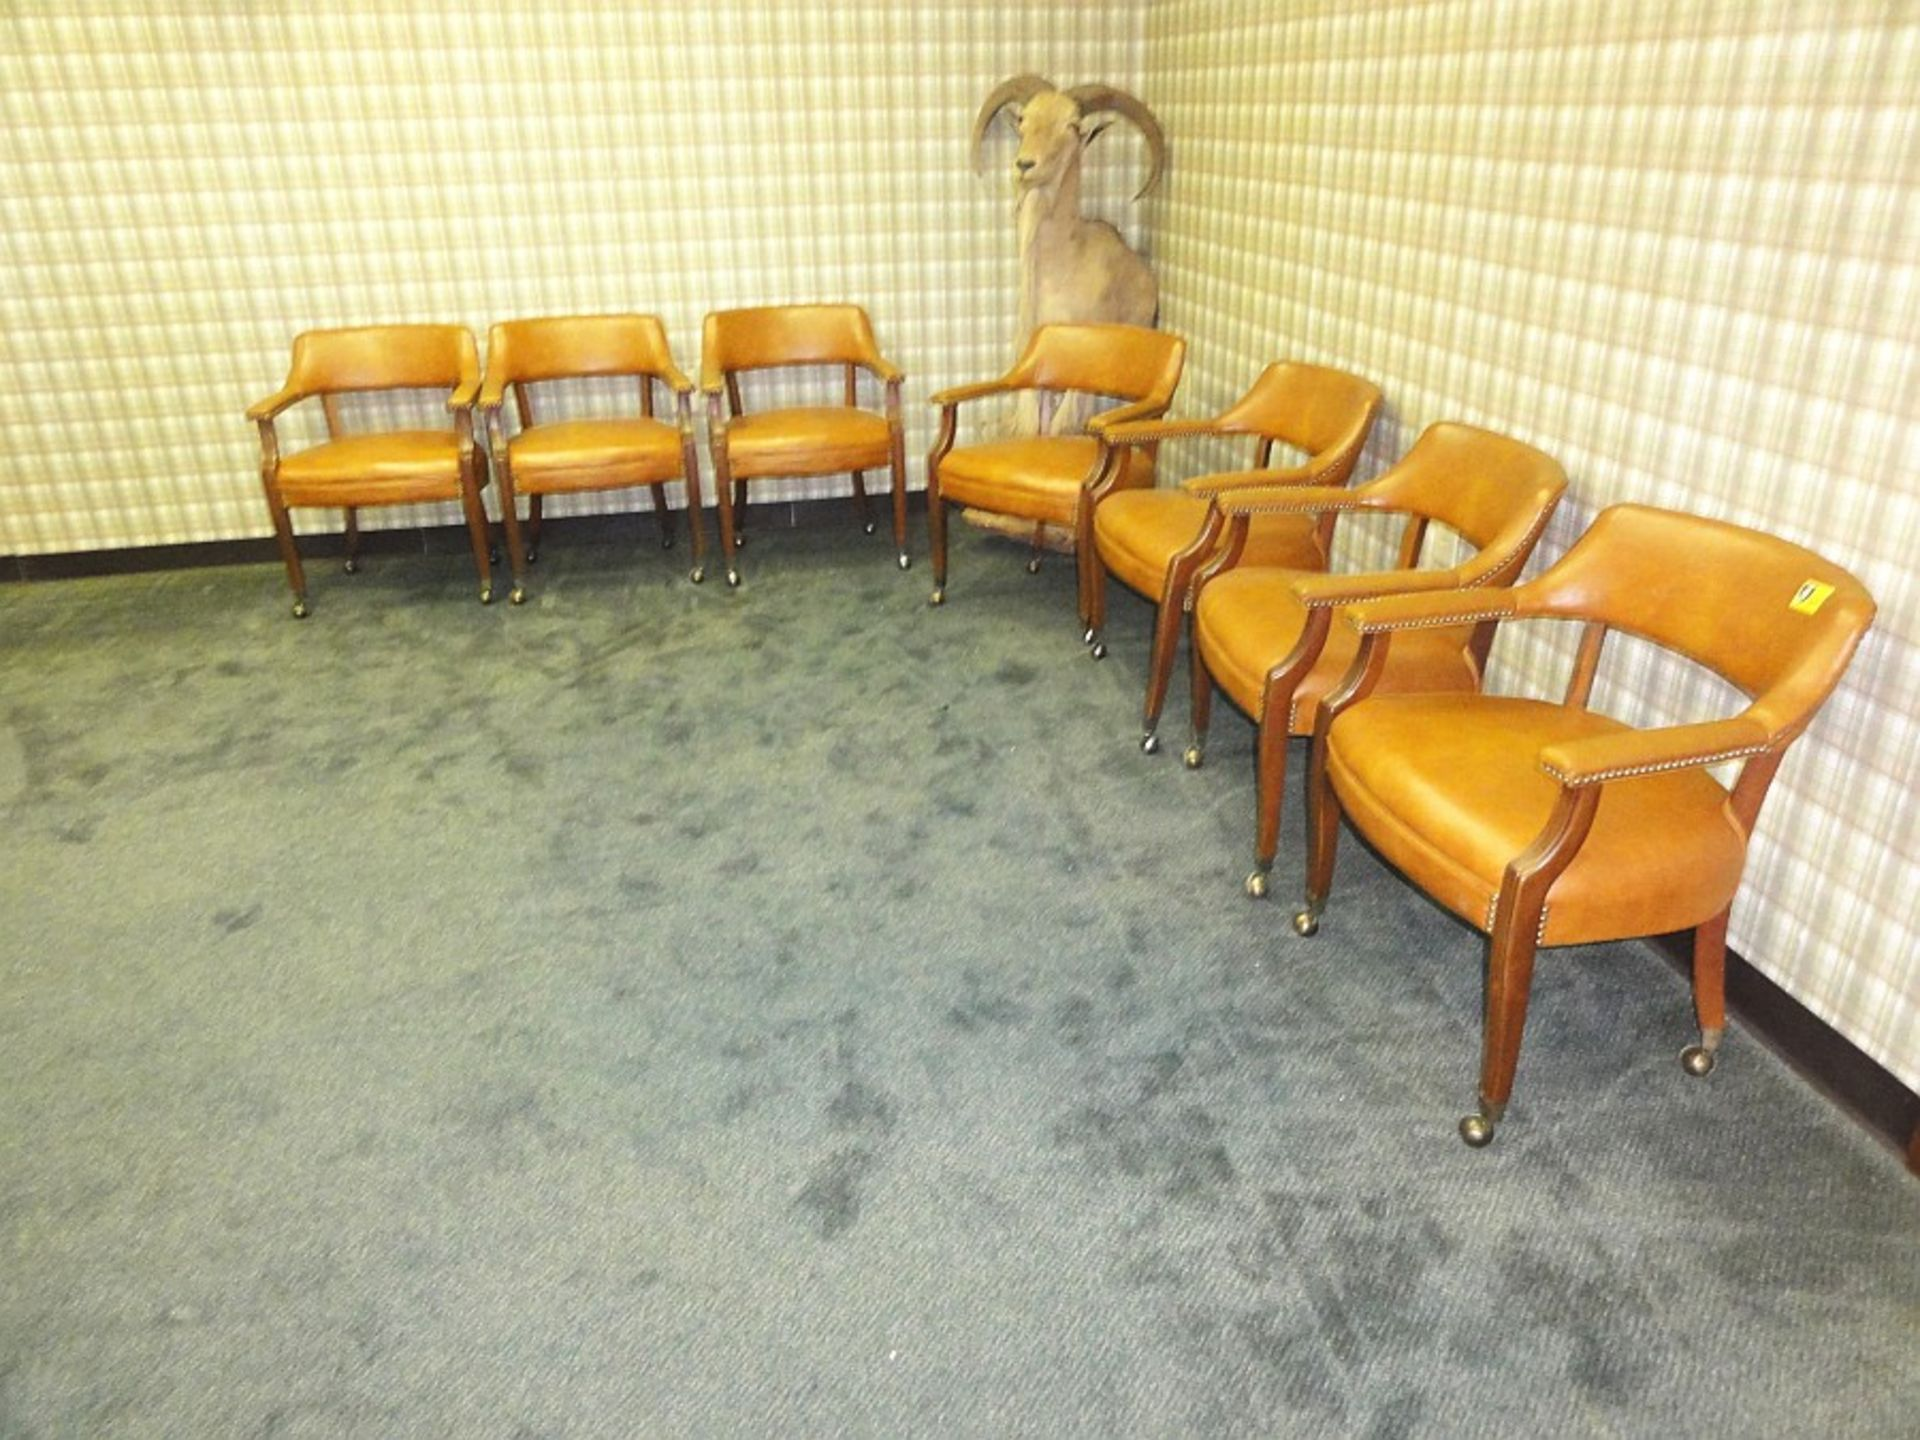 Lot 633 - Upholstered Rolling Chairs